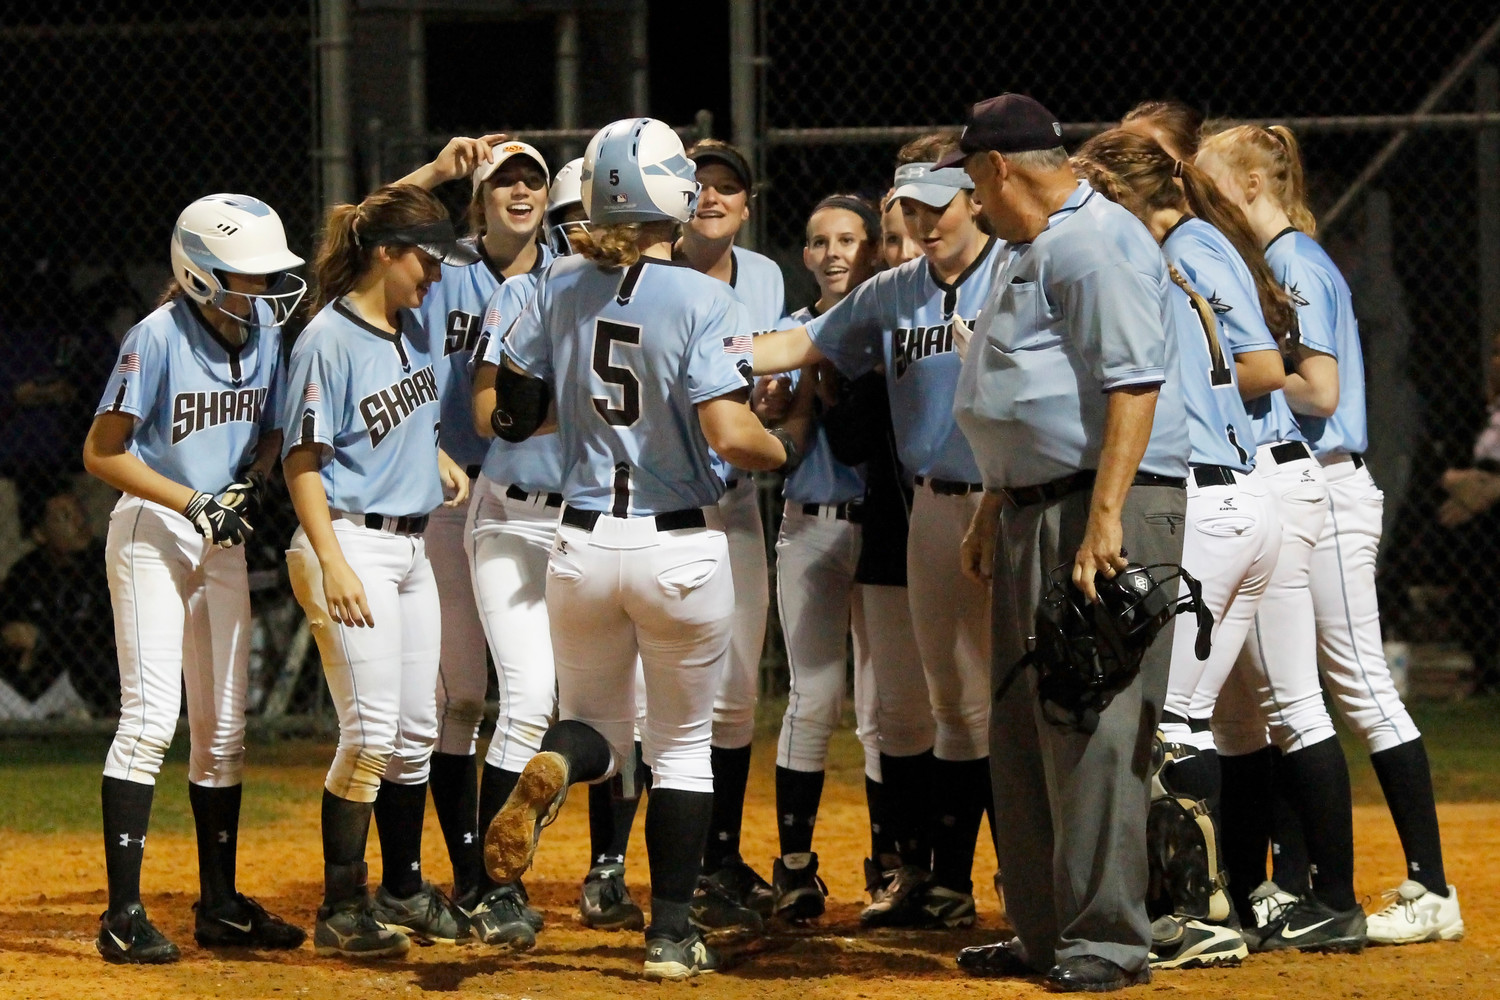 The Ponte Vedra softball team celebrates Michelle Holder's home run in the fifth inning.